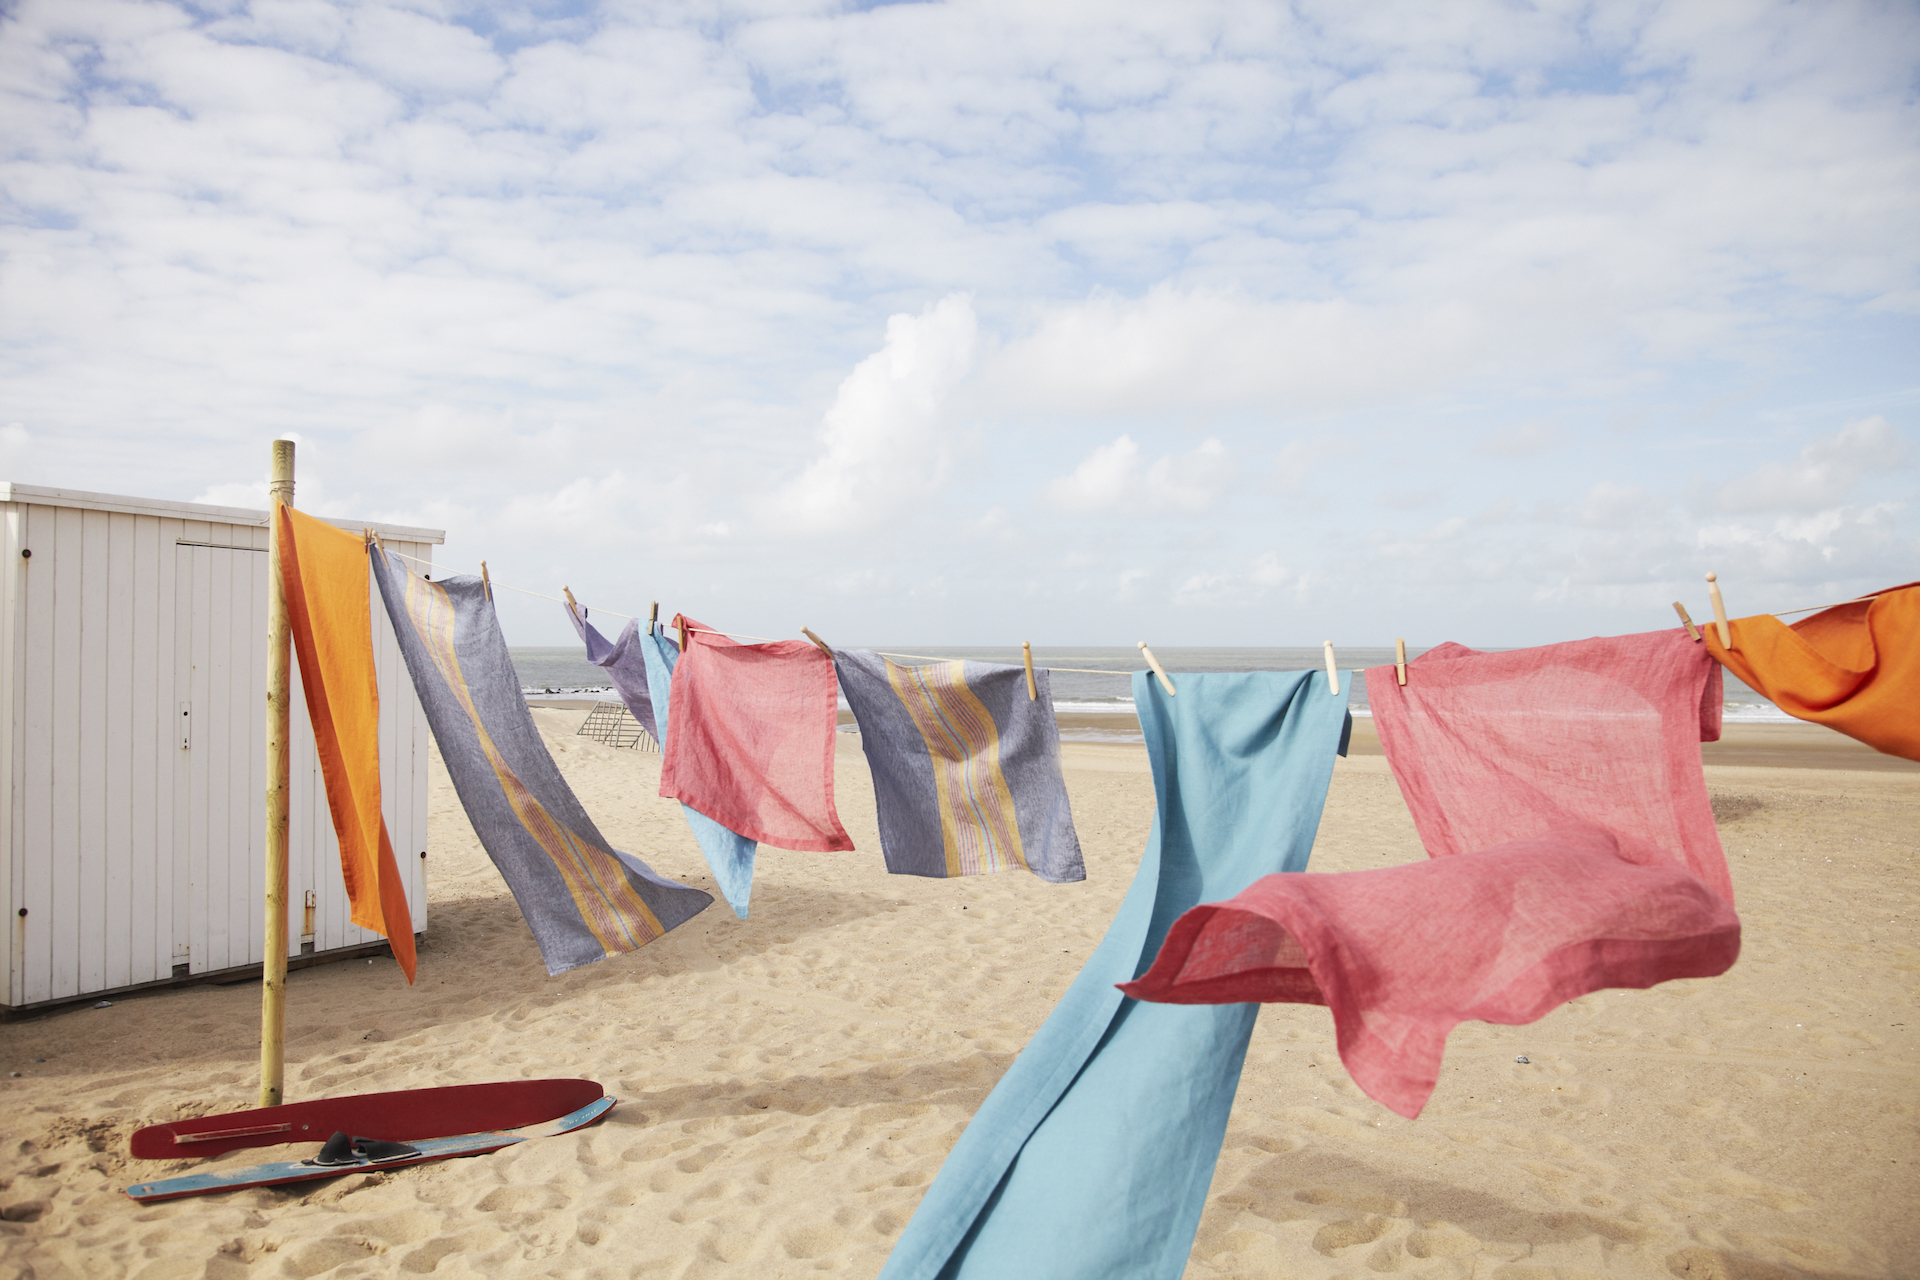 Linen drying on the beach